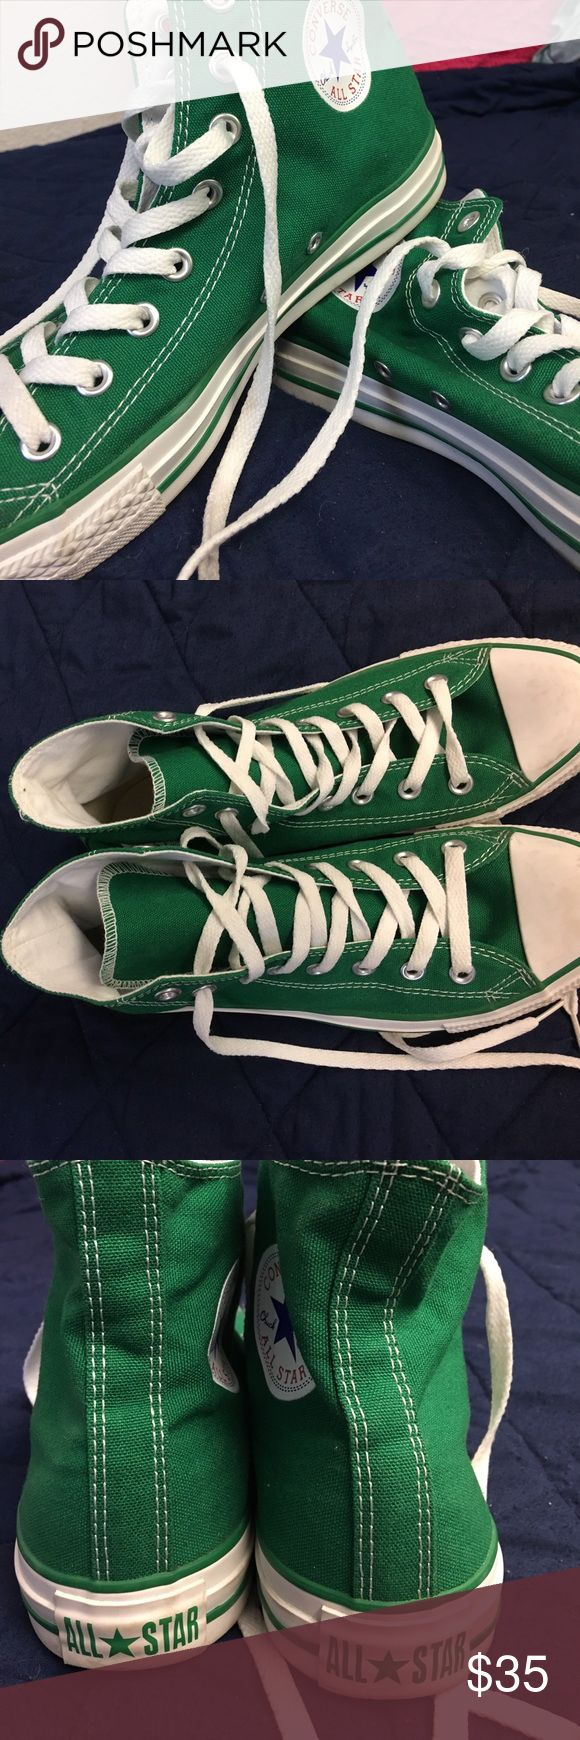 Green Chuck Taylor Converse High Tops Women's 10 GREEN high top converse!! Women's size 10 (Men's 8) Hardly worn! Canvas shows no sign of wear Will clean the white parts upon sale :) Converse Shoes Sneakers